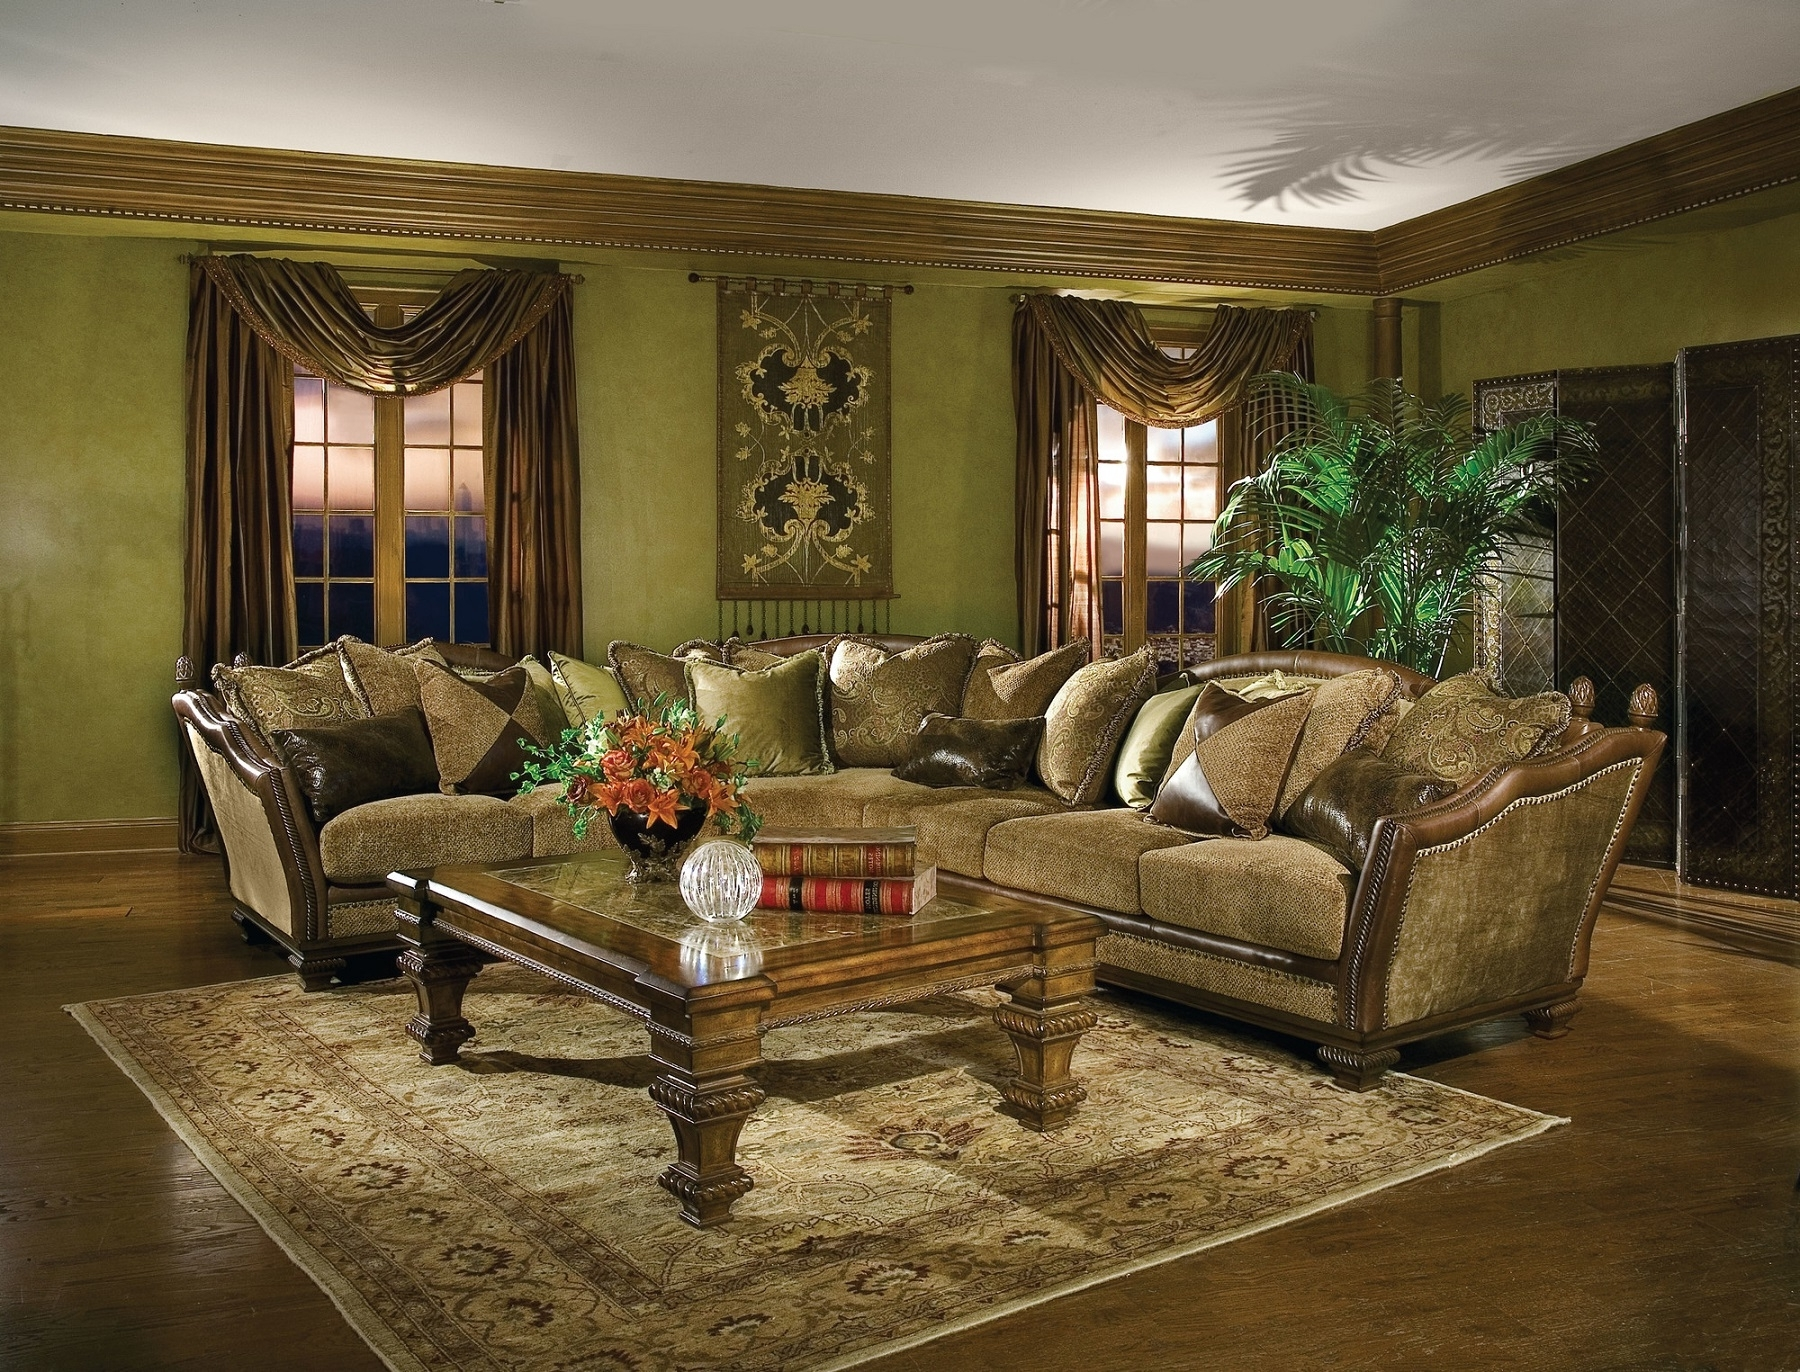 Amazing Luxury Sectional Sofas 84 About Remodel Modern Sofa For Most Popular Luxury Sectional Sofas (View 1 of 20)